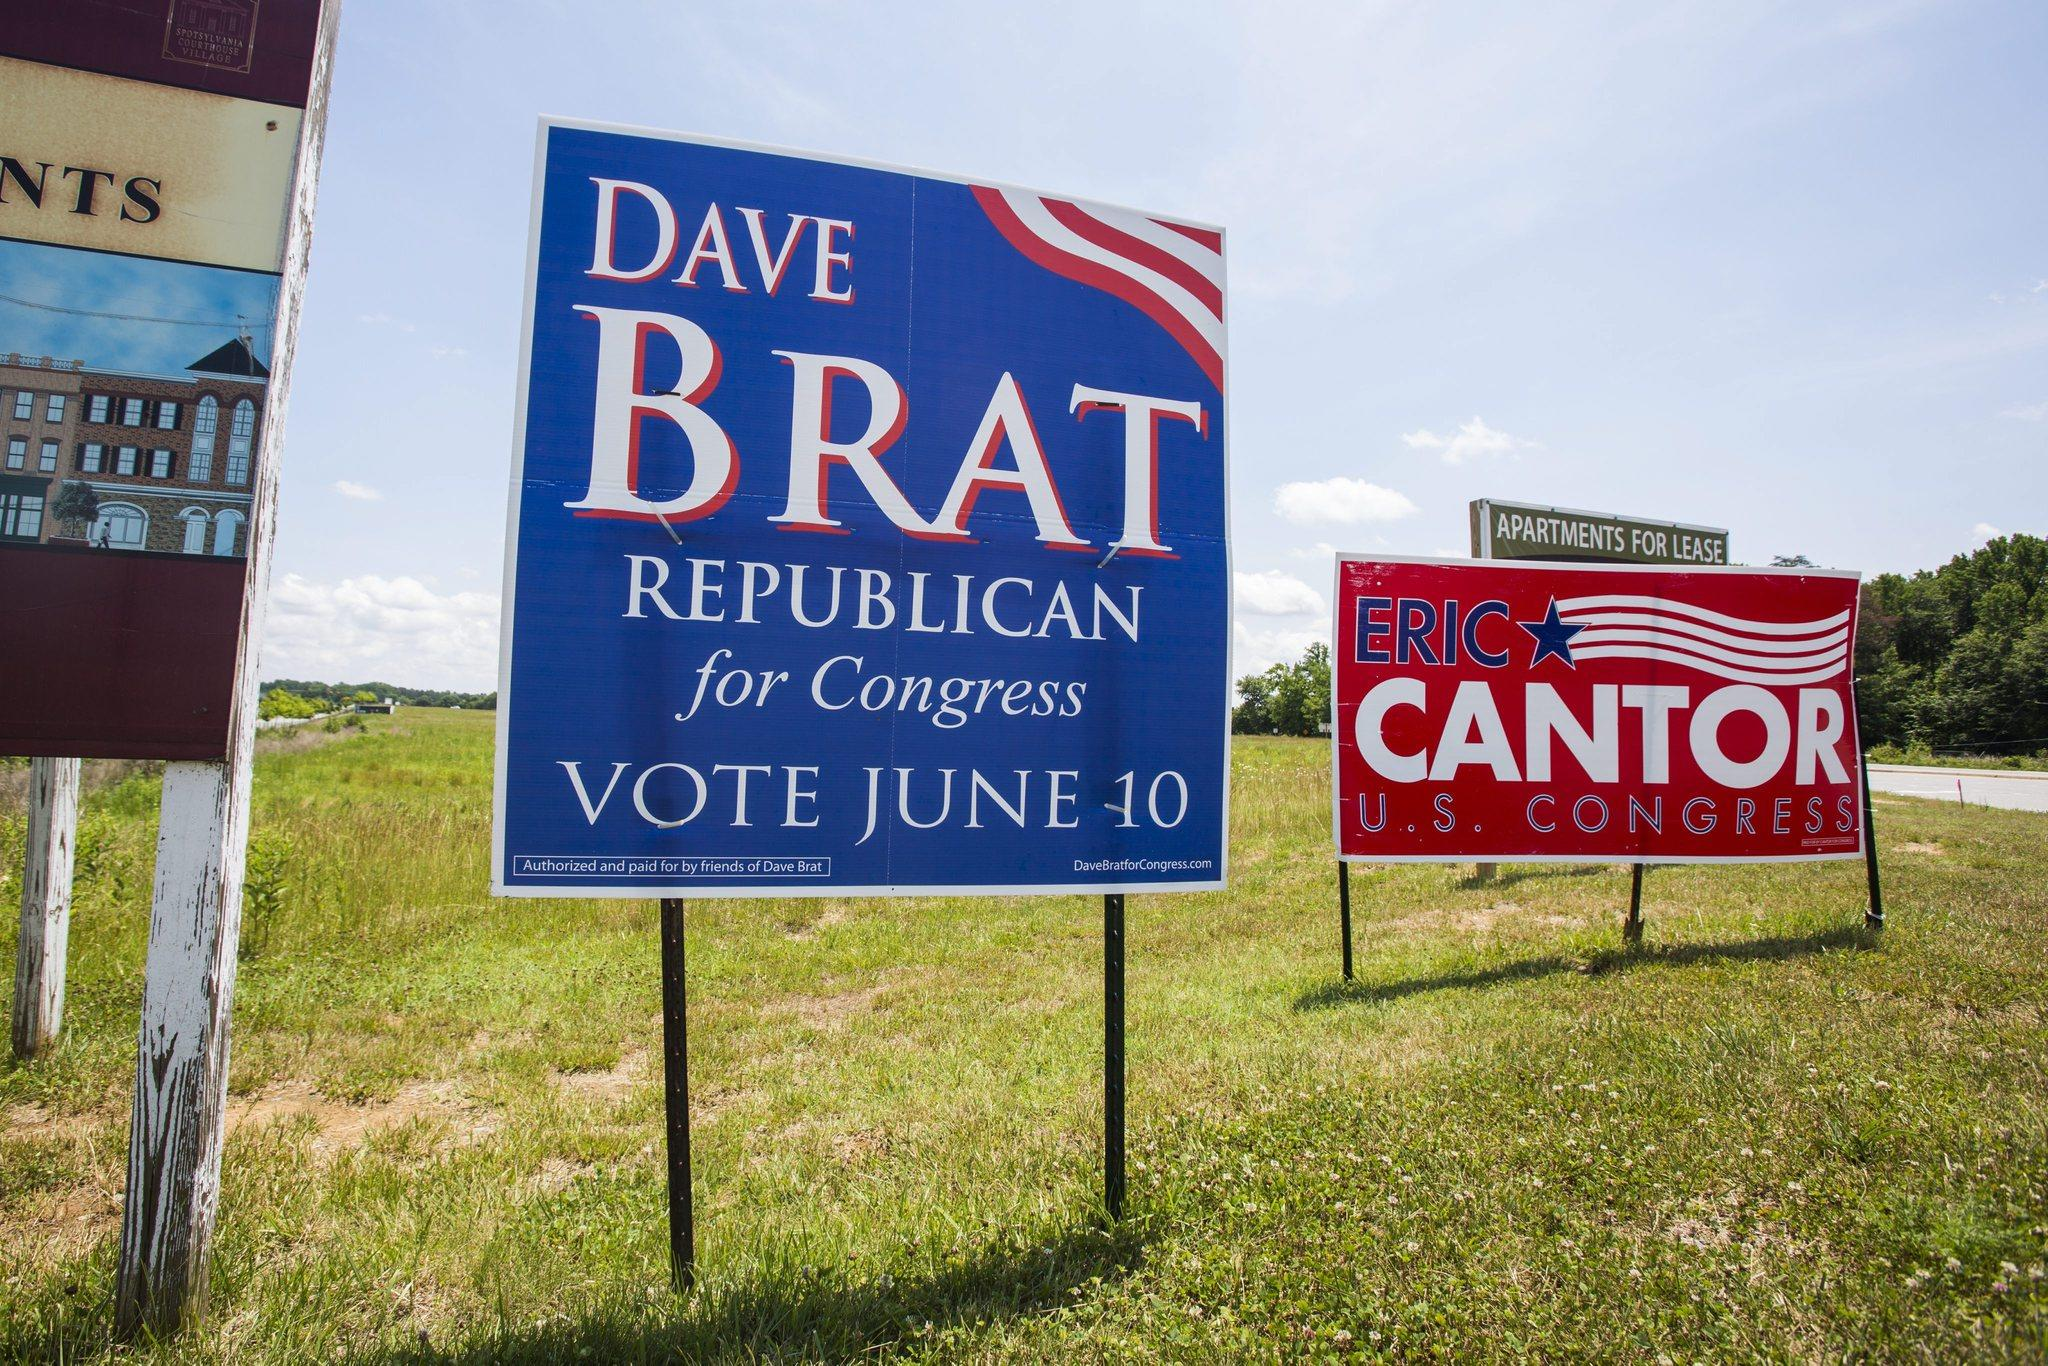 Campaign signs for Republican primary candidates David Brat and Eric Cantor sit along a roadside in Virginia's seventh congressional district in Spotsylvania, Virginia, USA, 11 June 2014. Brat's victory over the House Majority Leader has has sent shockwaves through the GOP establishment and energized the Tea Party.